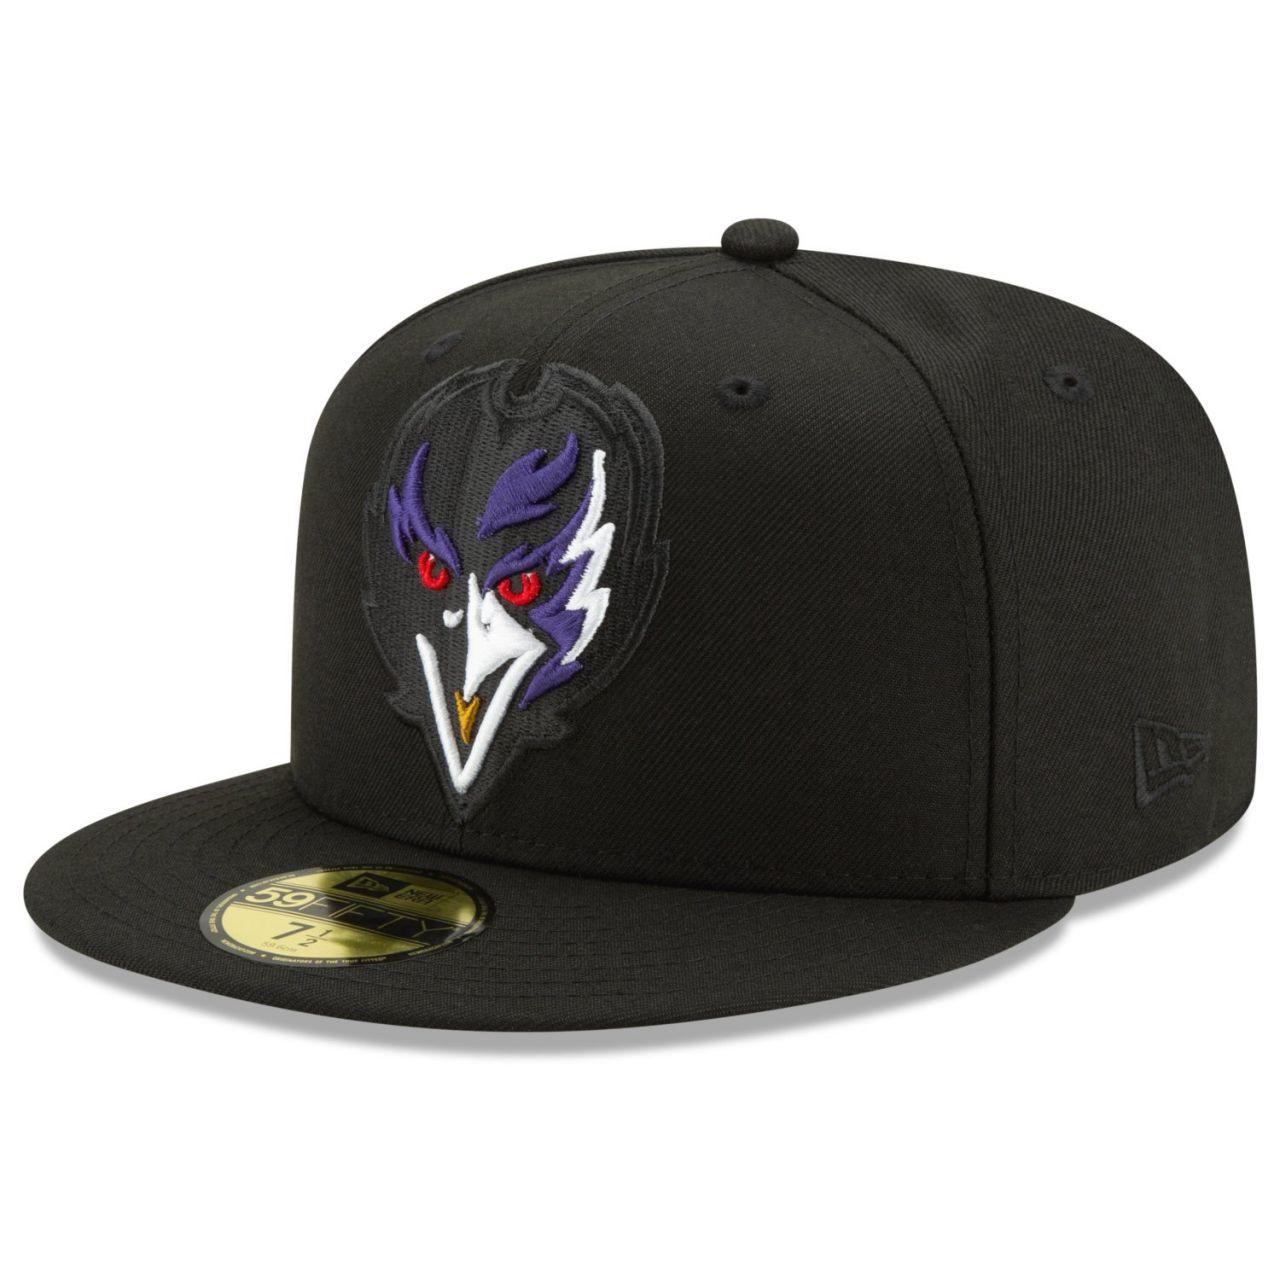 amfoo - New Era 59Fifty Fitted Cap - ELEMENTS Baltimore Ravens